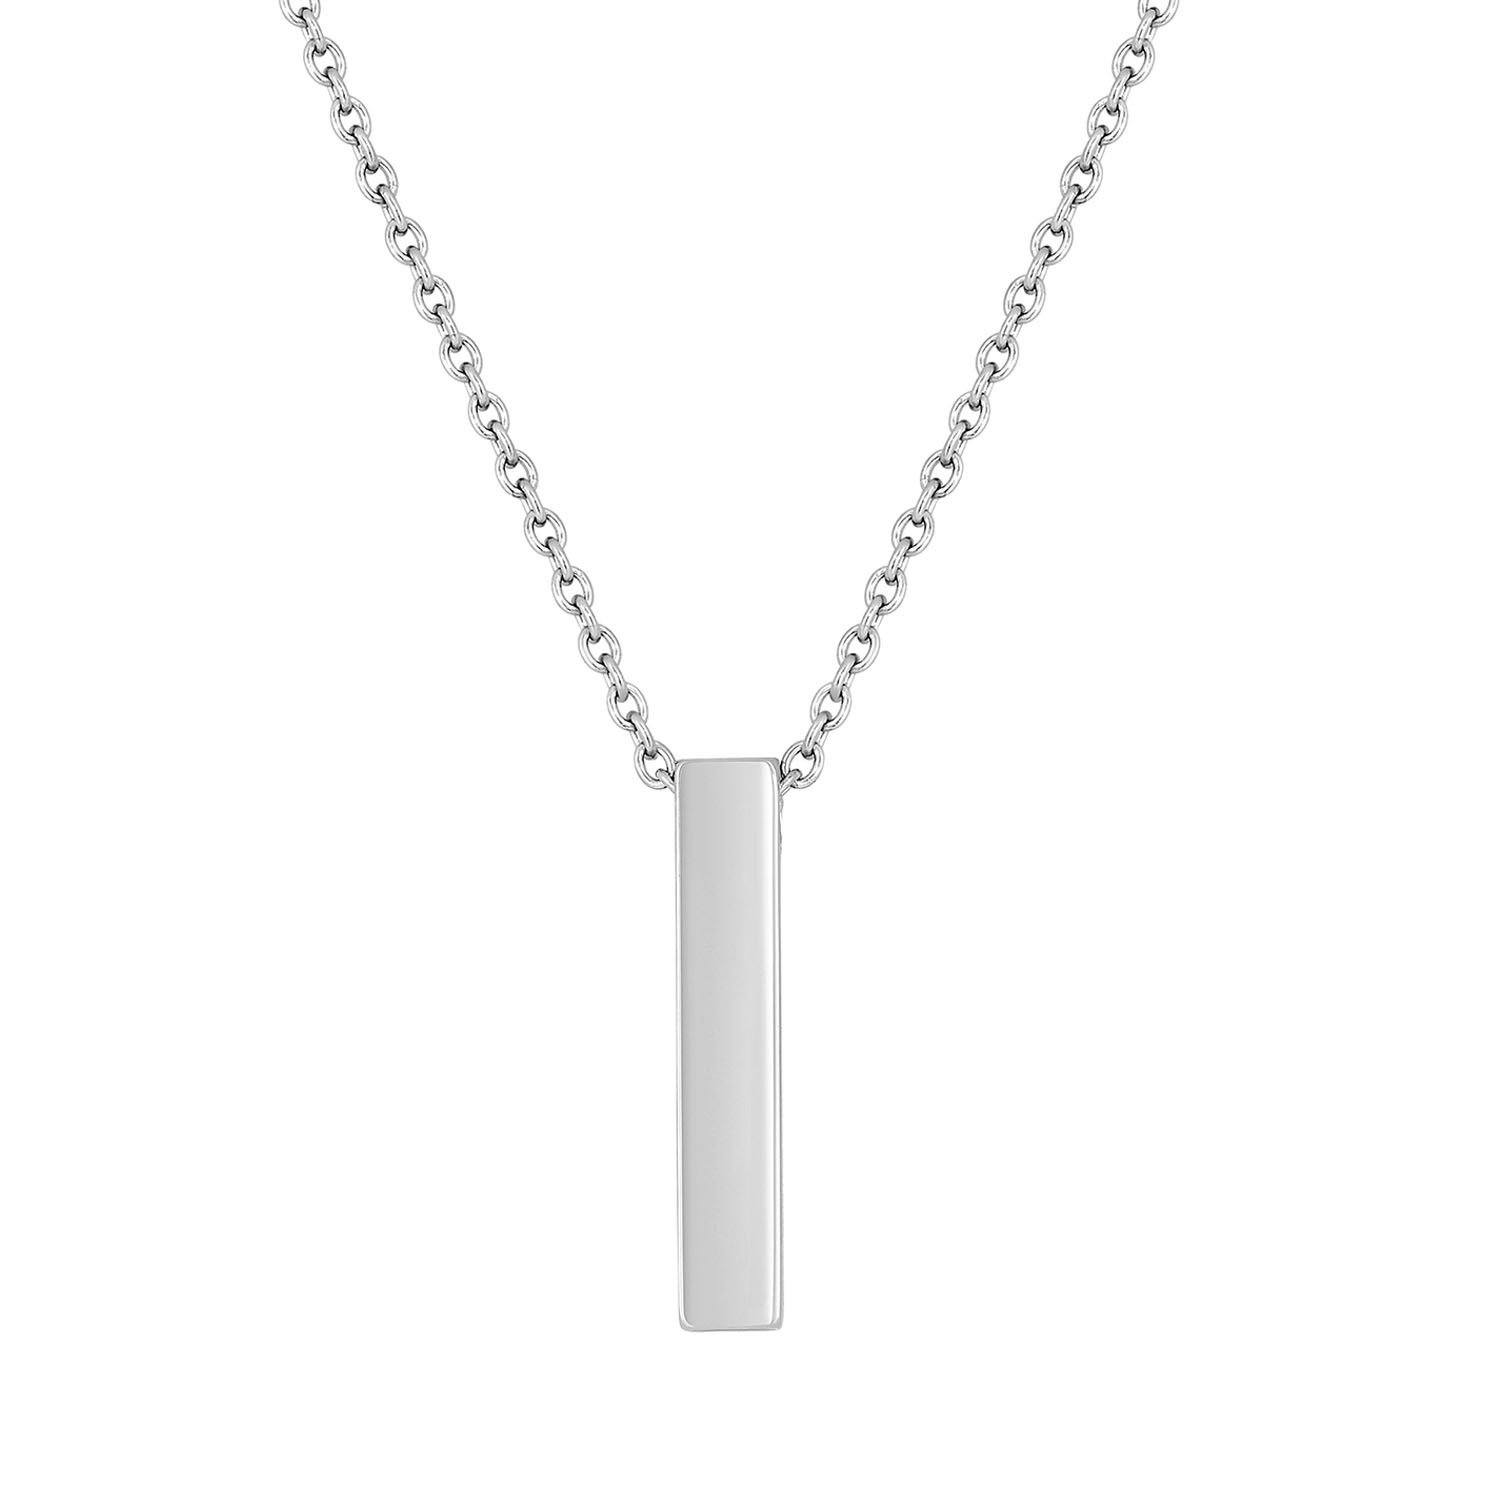 Cremation Jewelry Necklace for Ashes - Bar Pendant